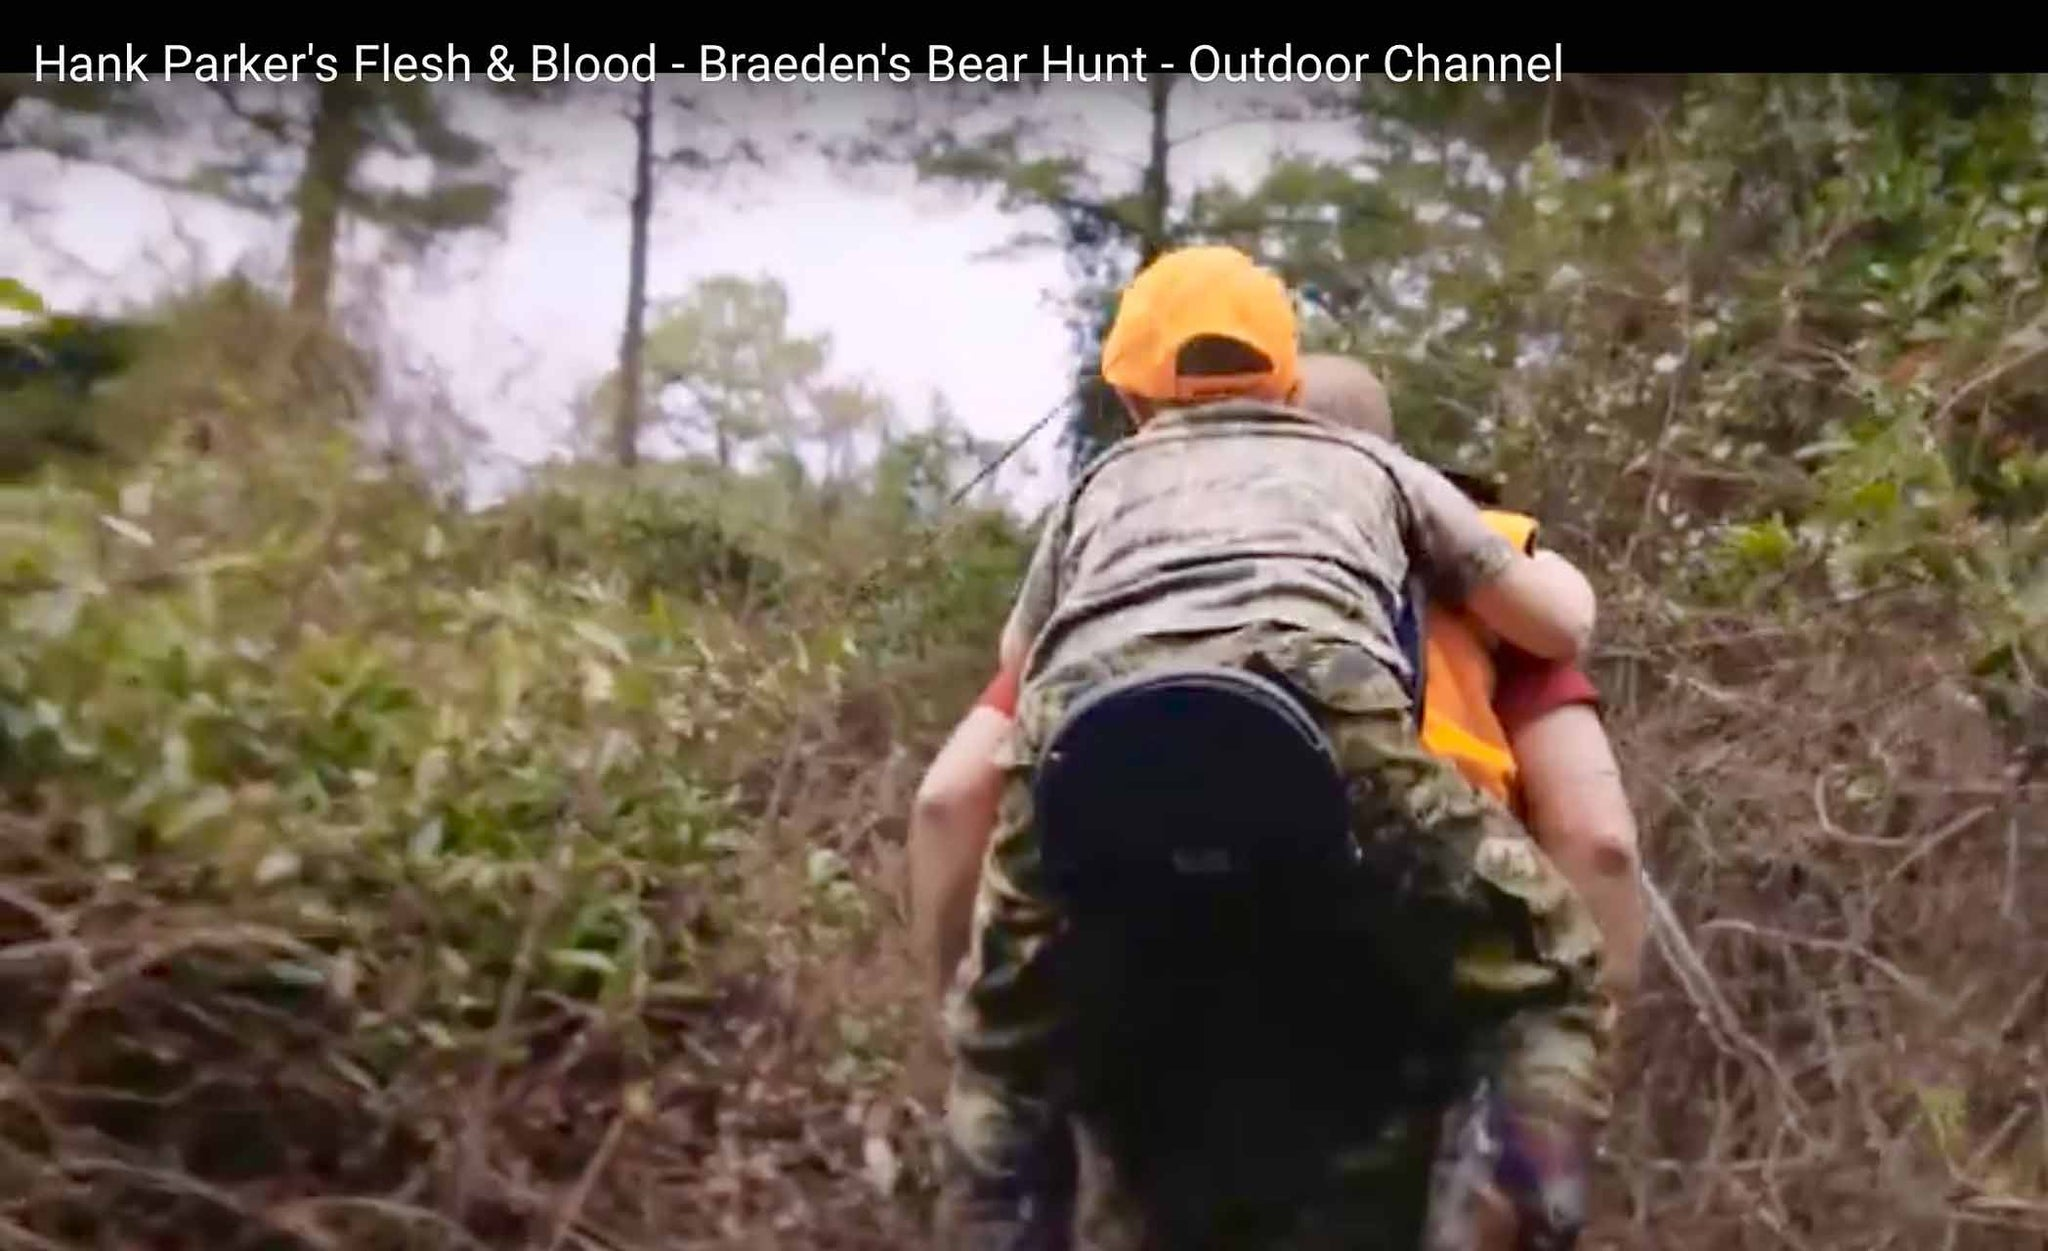 A dad, a dream, his boy and a bear. The Freeloader goes on a hunt. Featured on the Outdoor Channel!